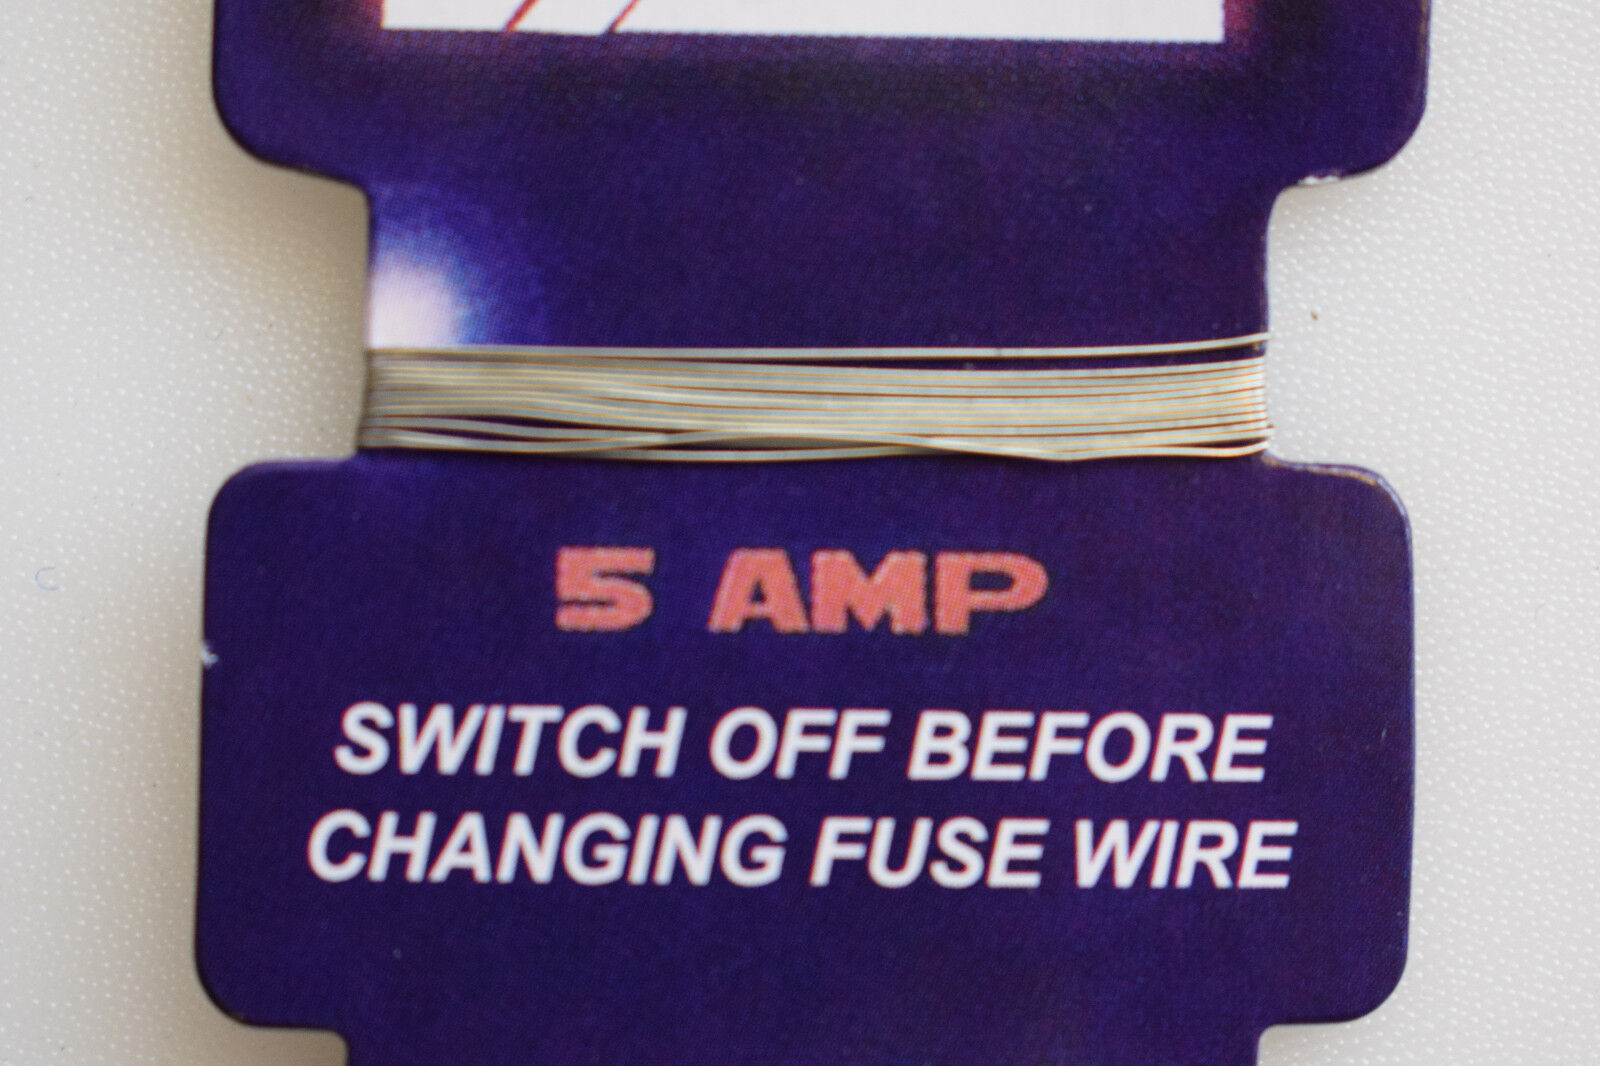 Lyvia Card Of 5 Amp 15 30 Fuse Wire For Consumer Box 2